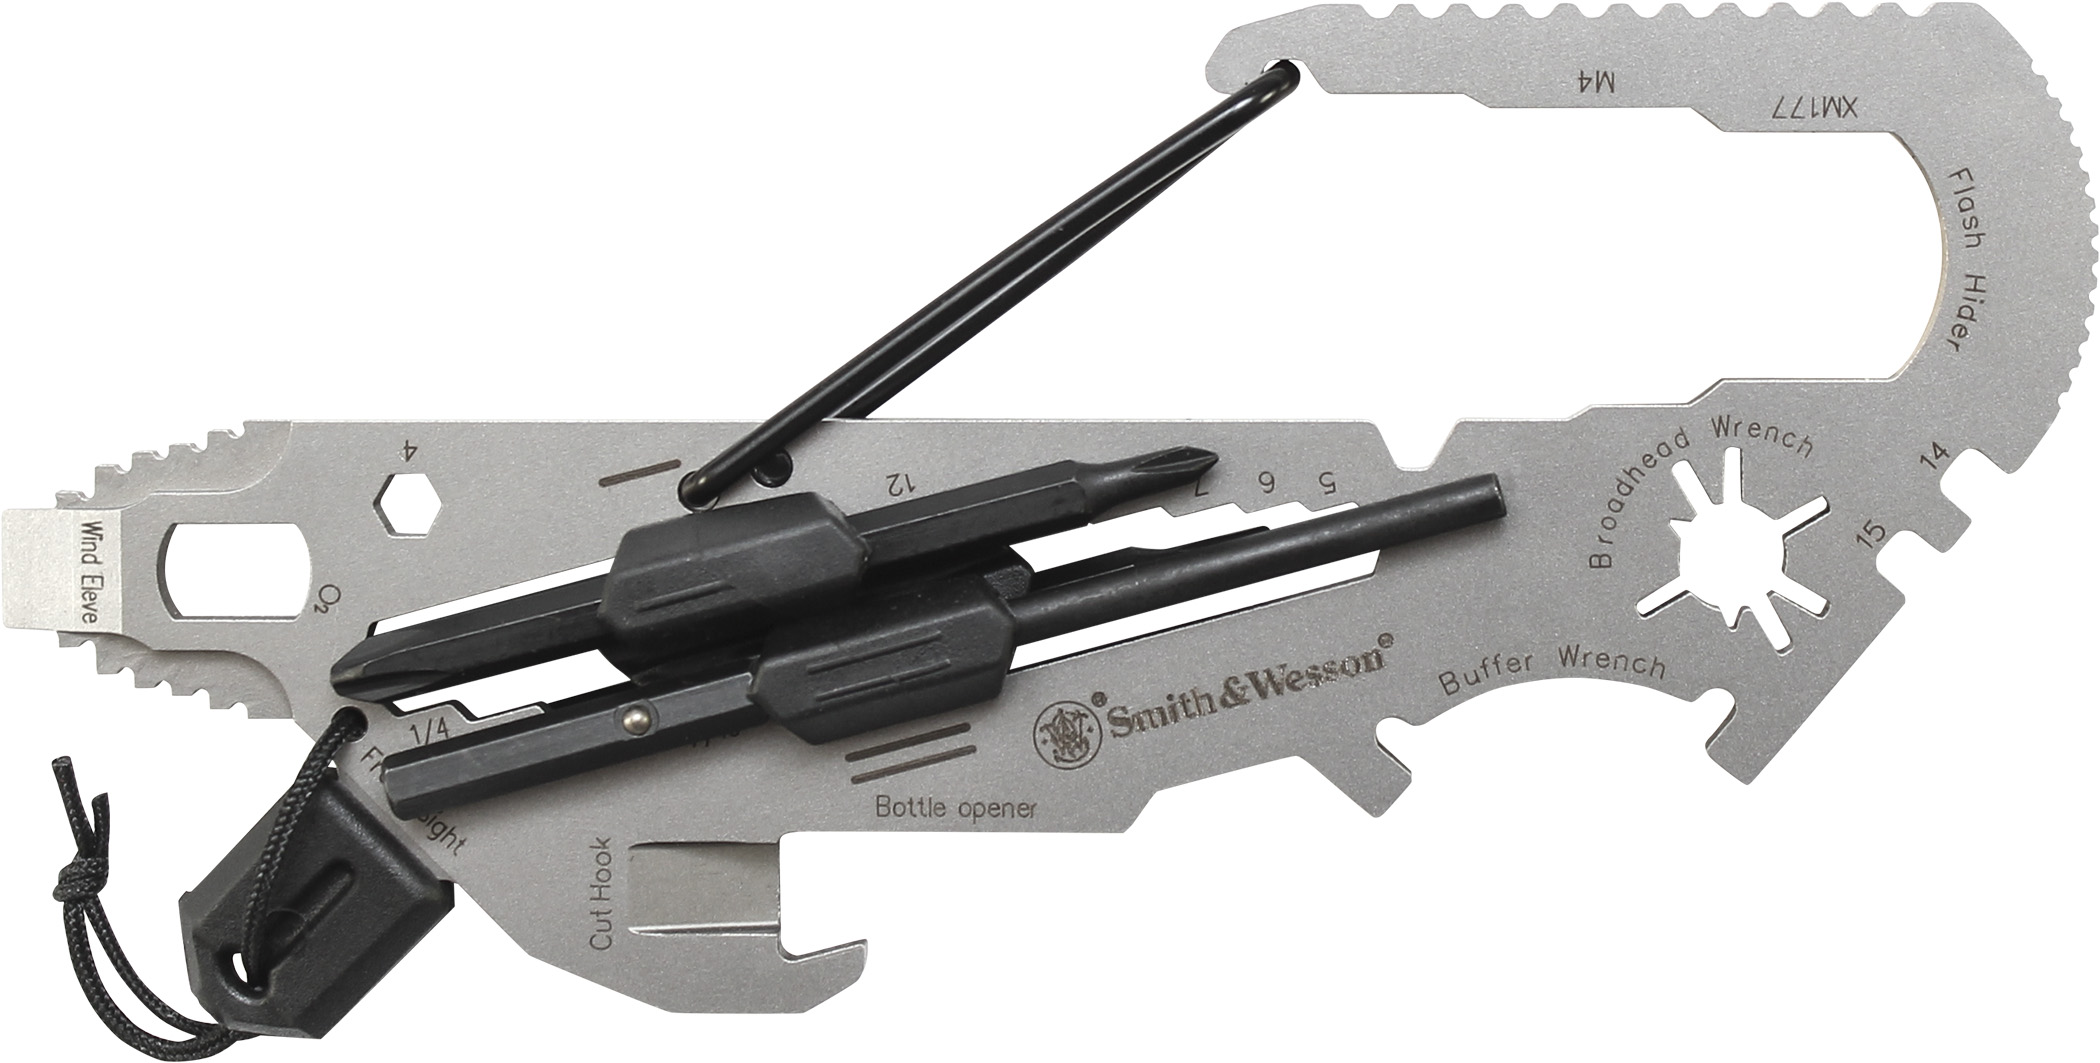 SWRT1 - Smith & Wesson Rifle & Archery Tool, 4034 Stainless Steel